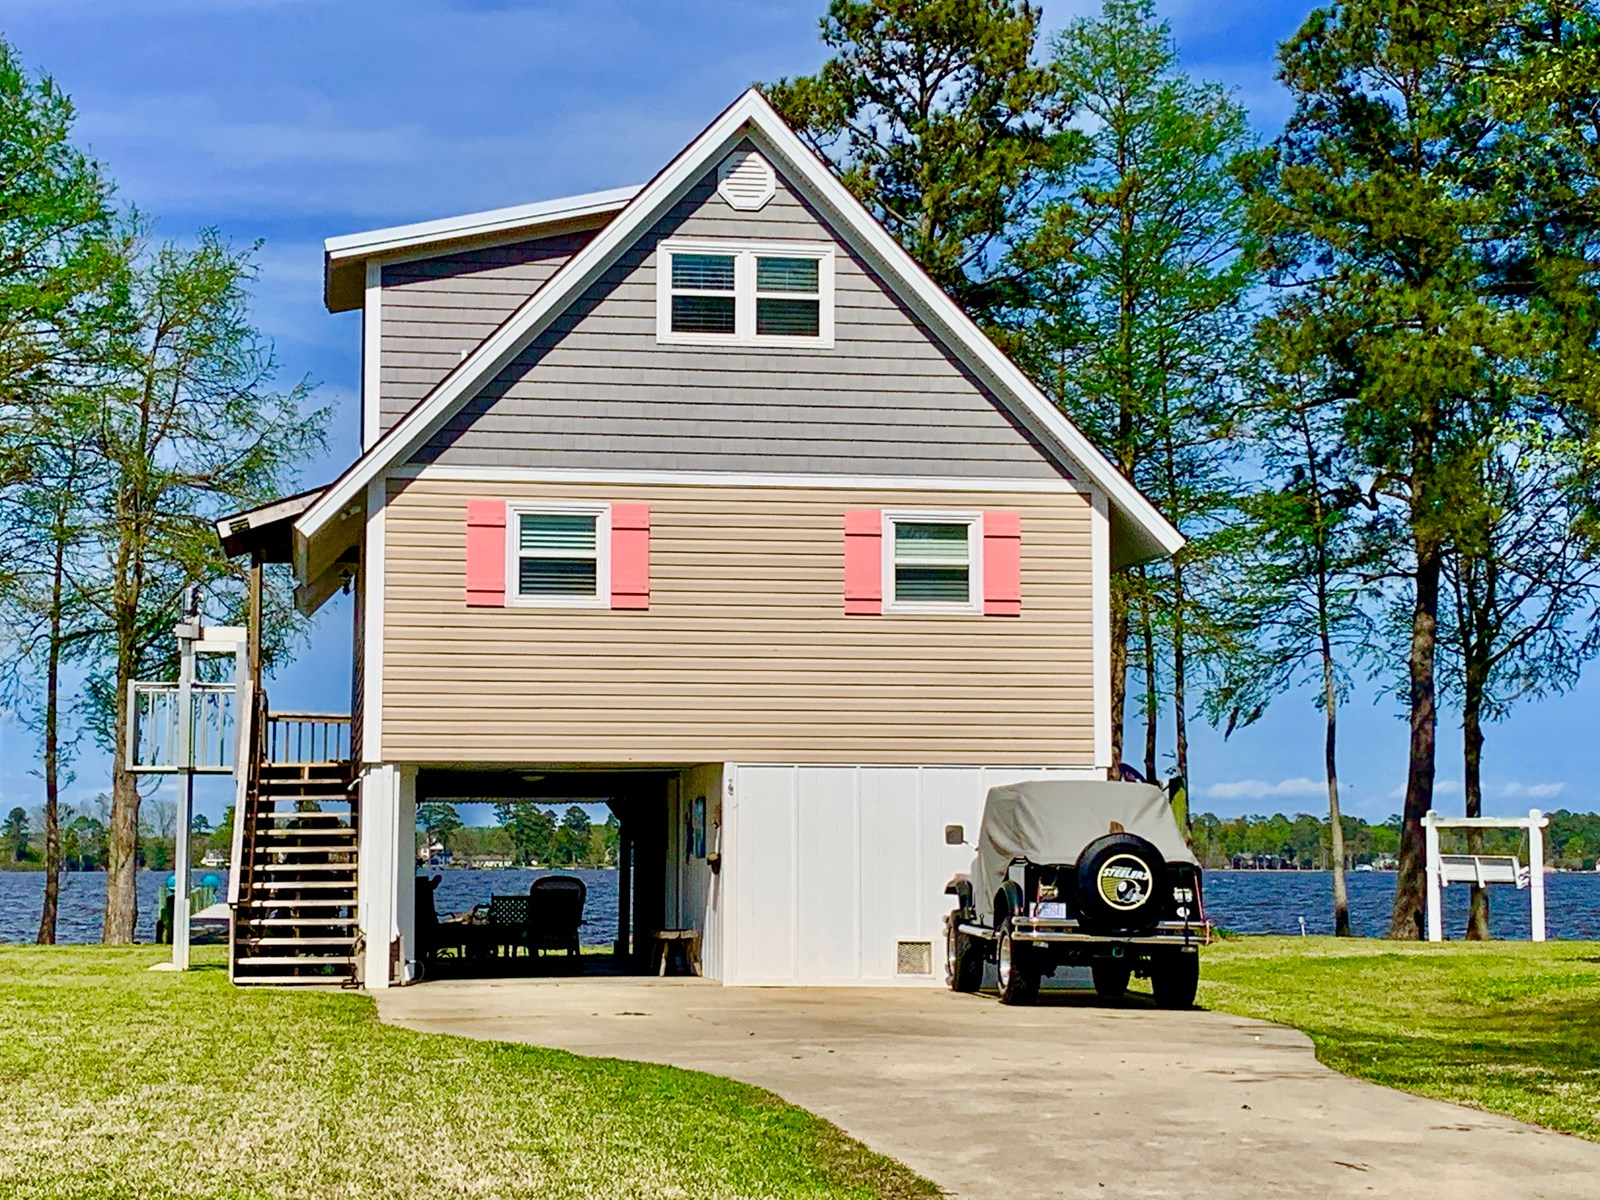 Riverfront home for sale in Beaufort County, NC